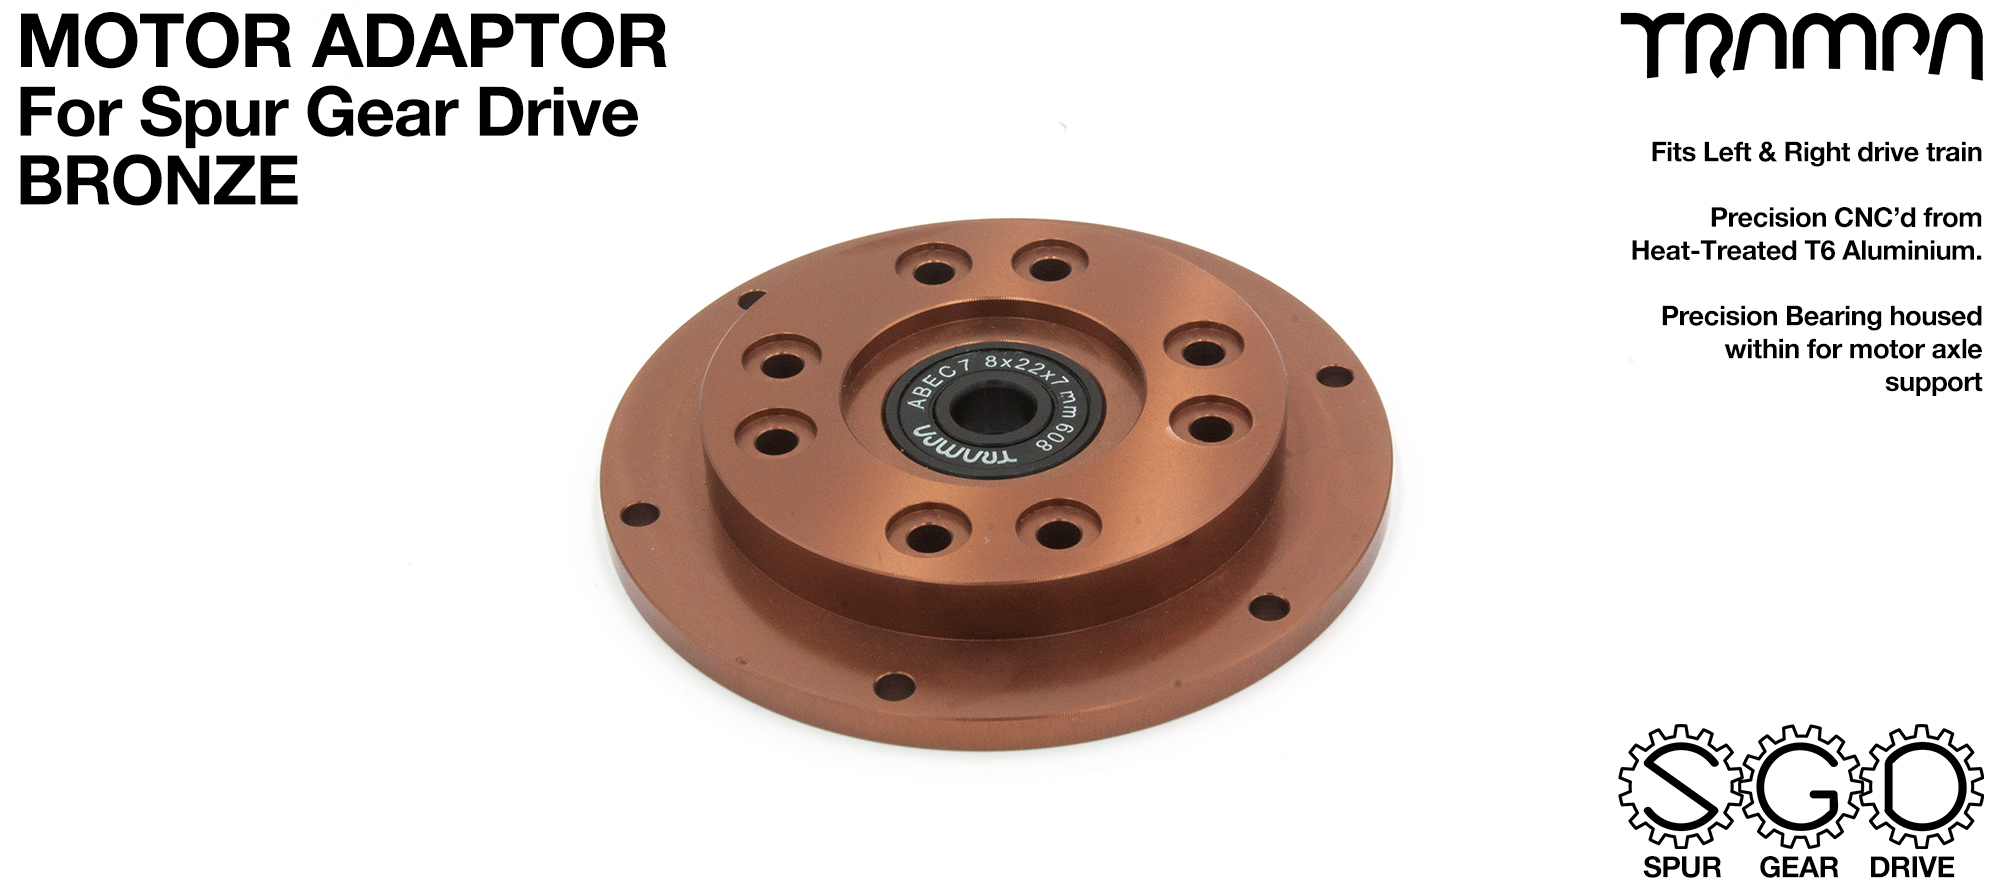 Motor Adapter Plate - BRONZE